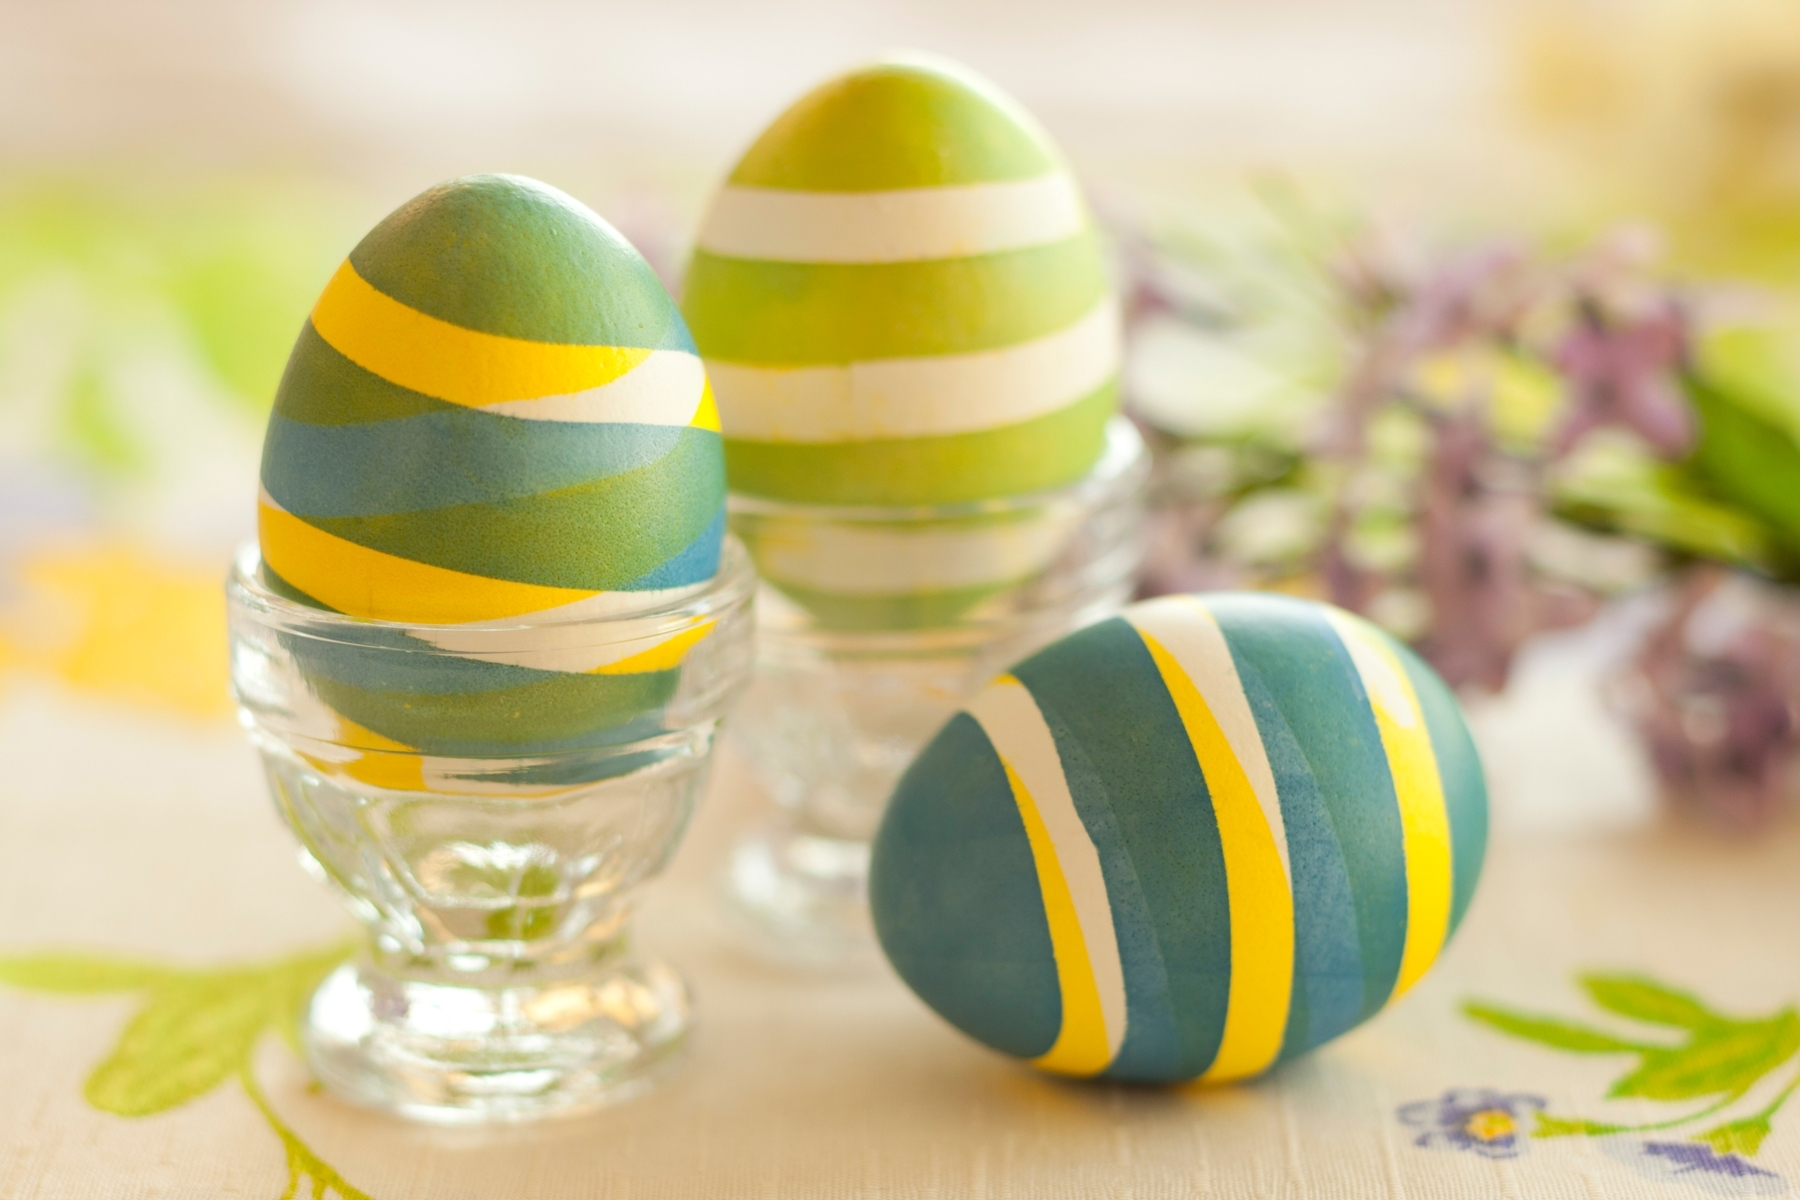 striped eggs in different shades of green, with white and yellow, how to dye easter eggs, two in clear glass dishes, one placed on the table